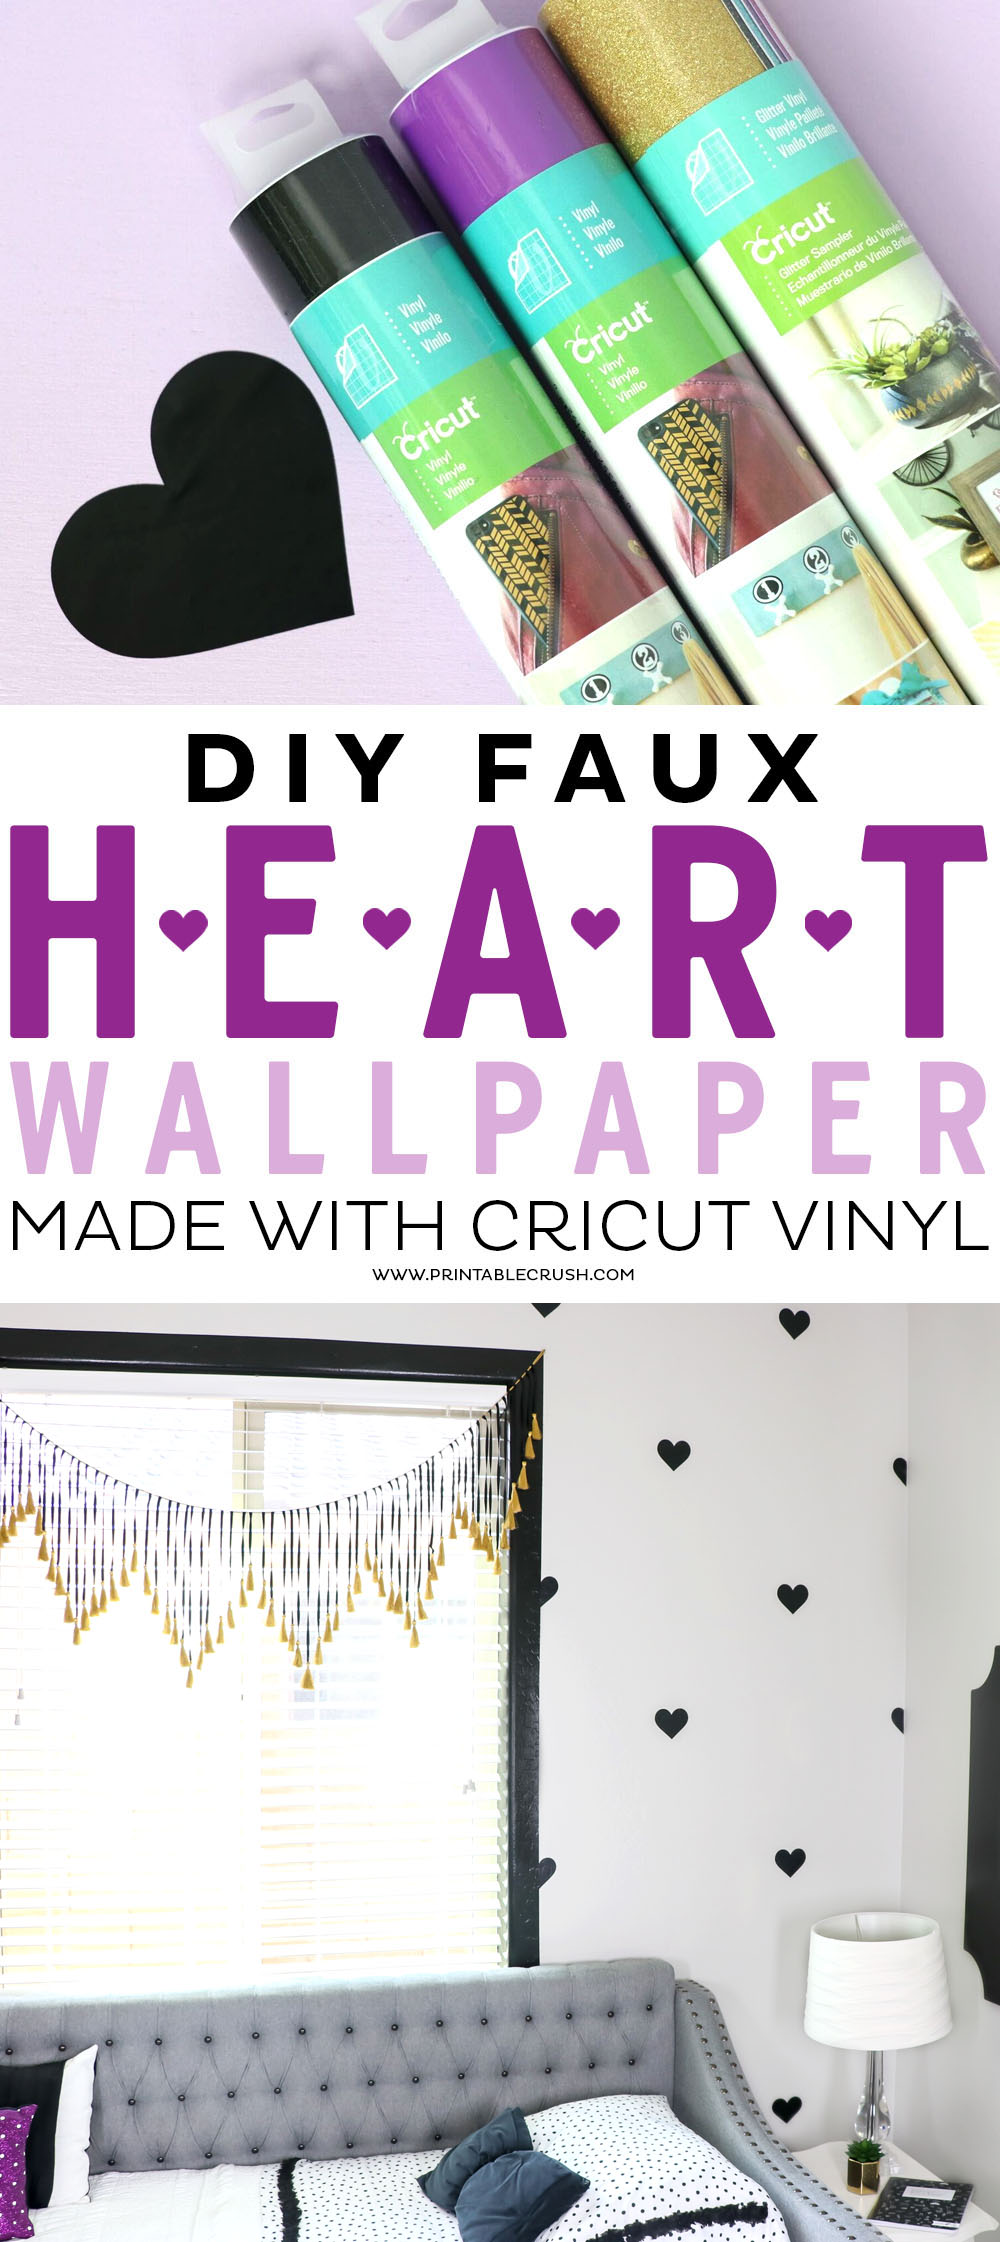 Make a fun and easy statement wall with this DIY Faux Heart Wallpaper made with Cricut Vinyl!